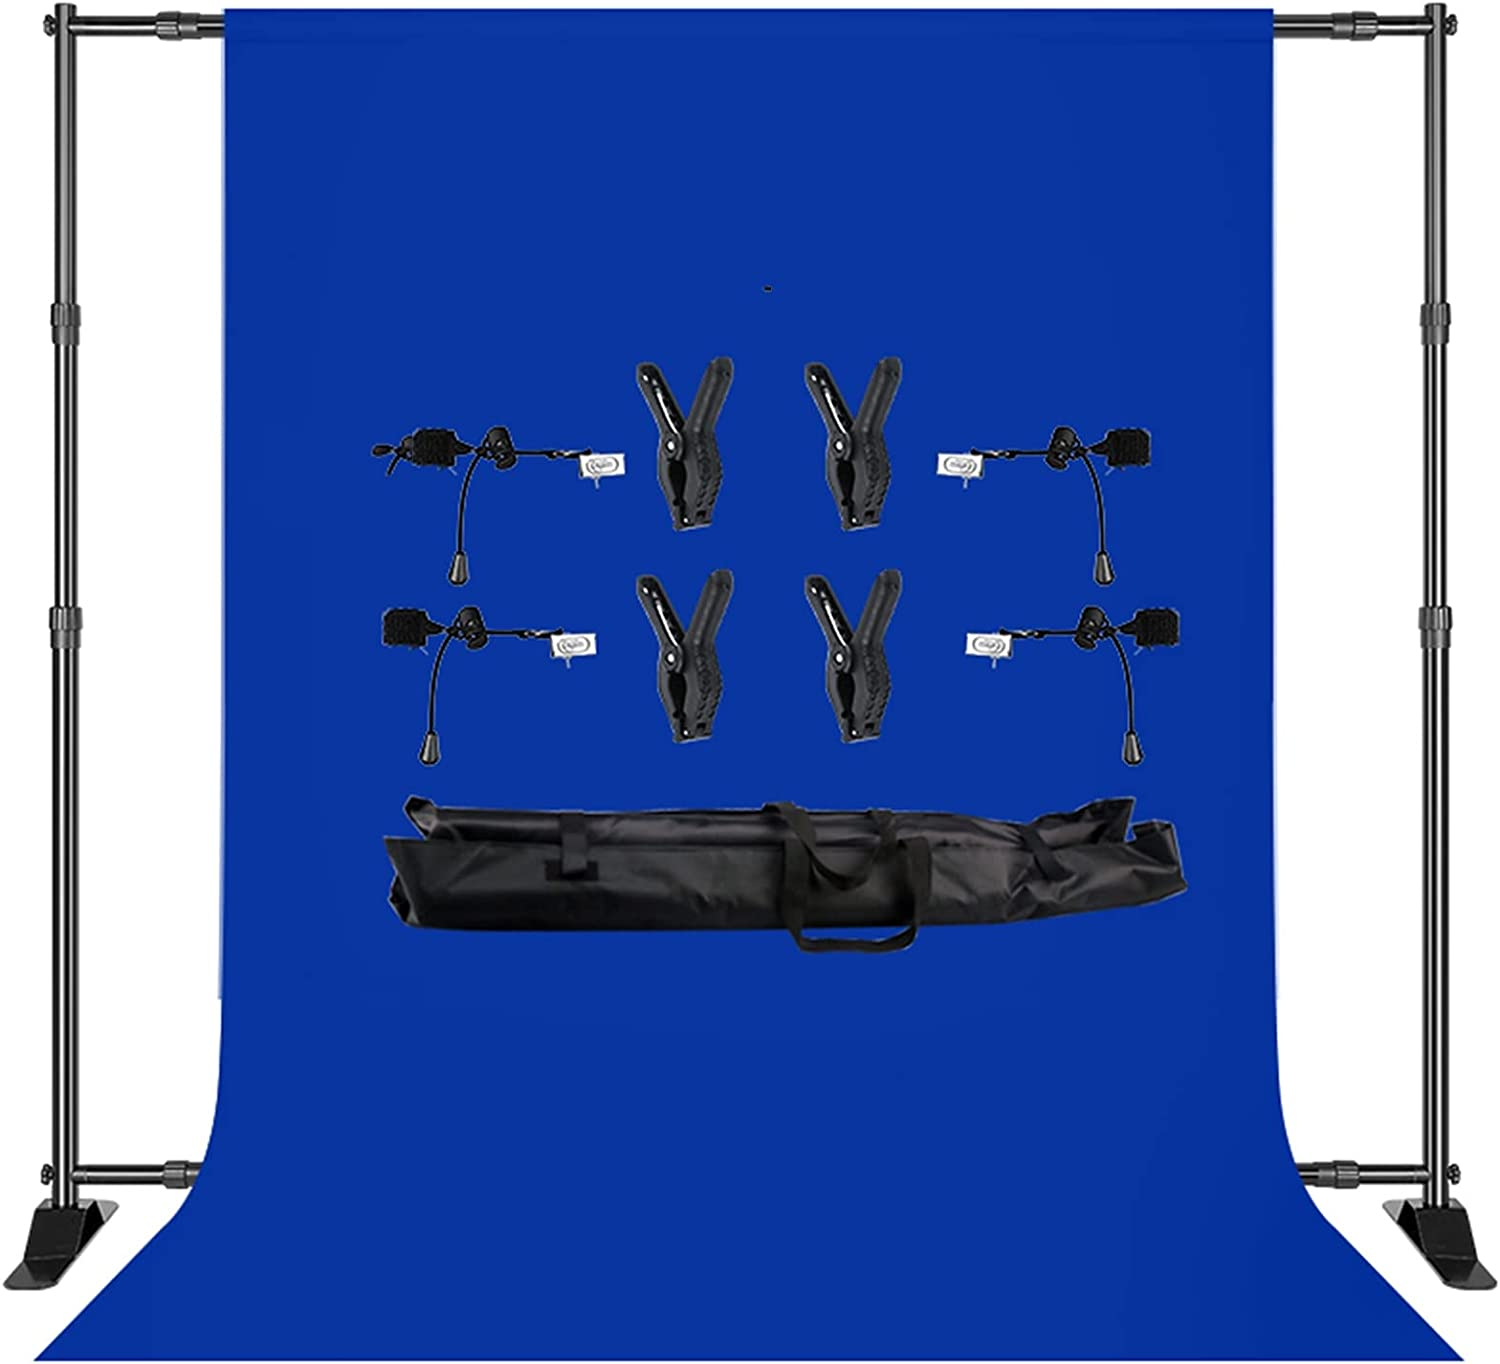 YYFANGYF Photo Video Studio Background Kit Many Be super welcome popular brands 2.7x3m Stand Double-